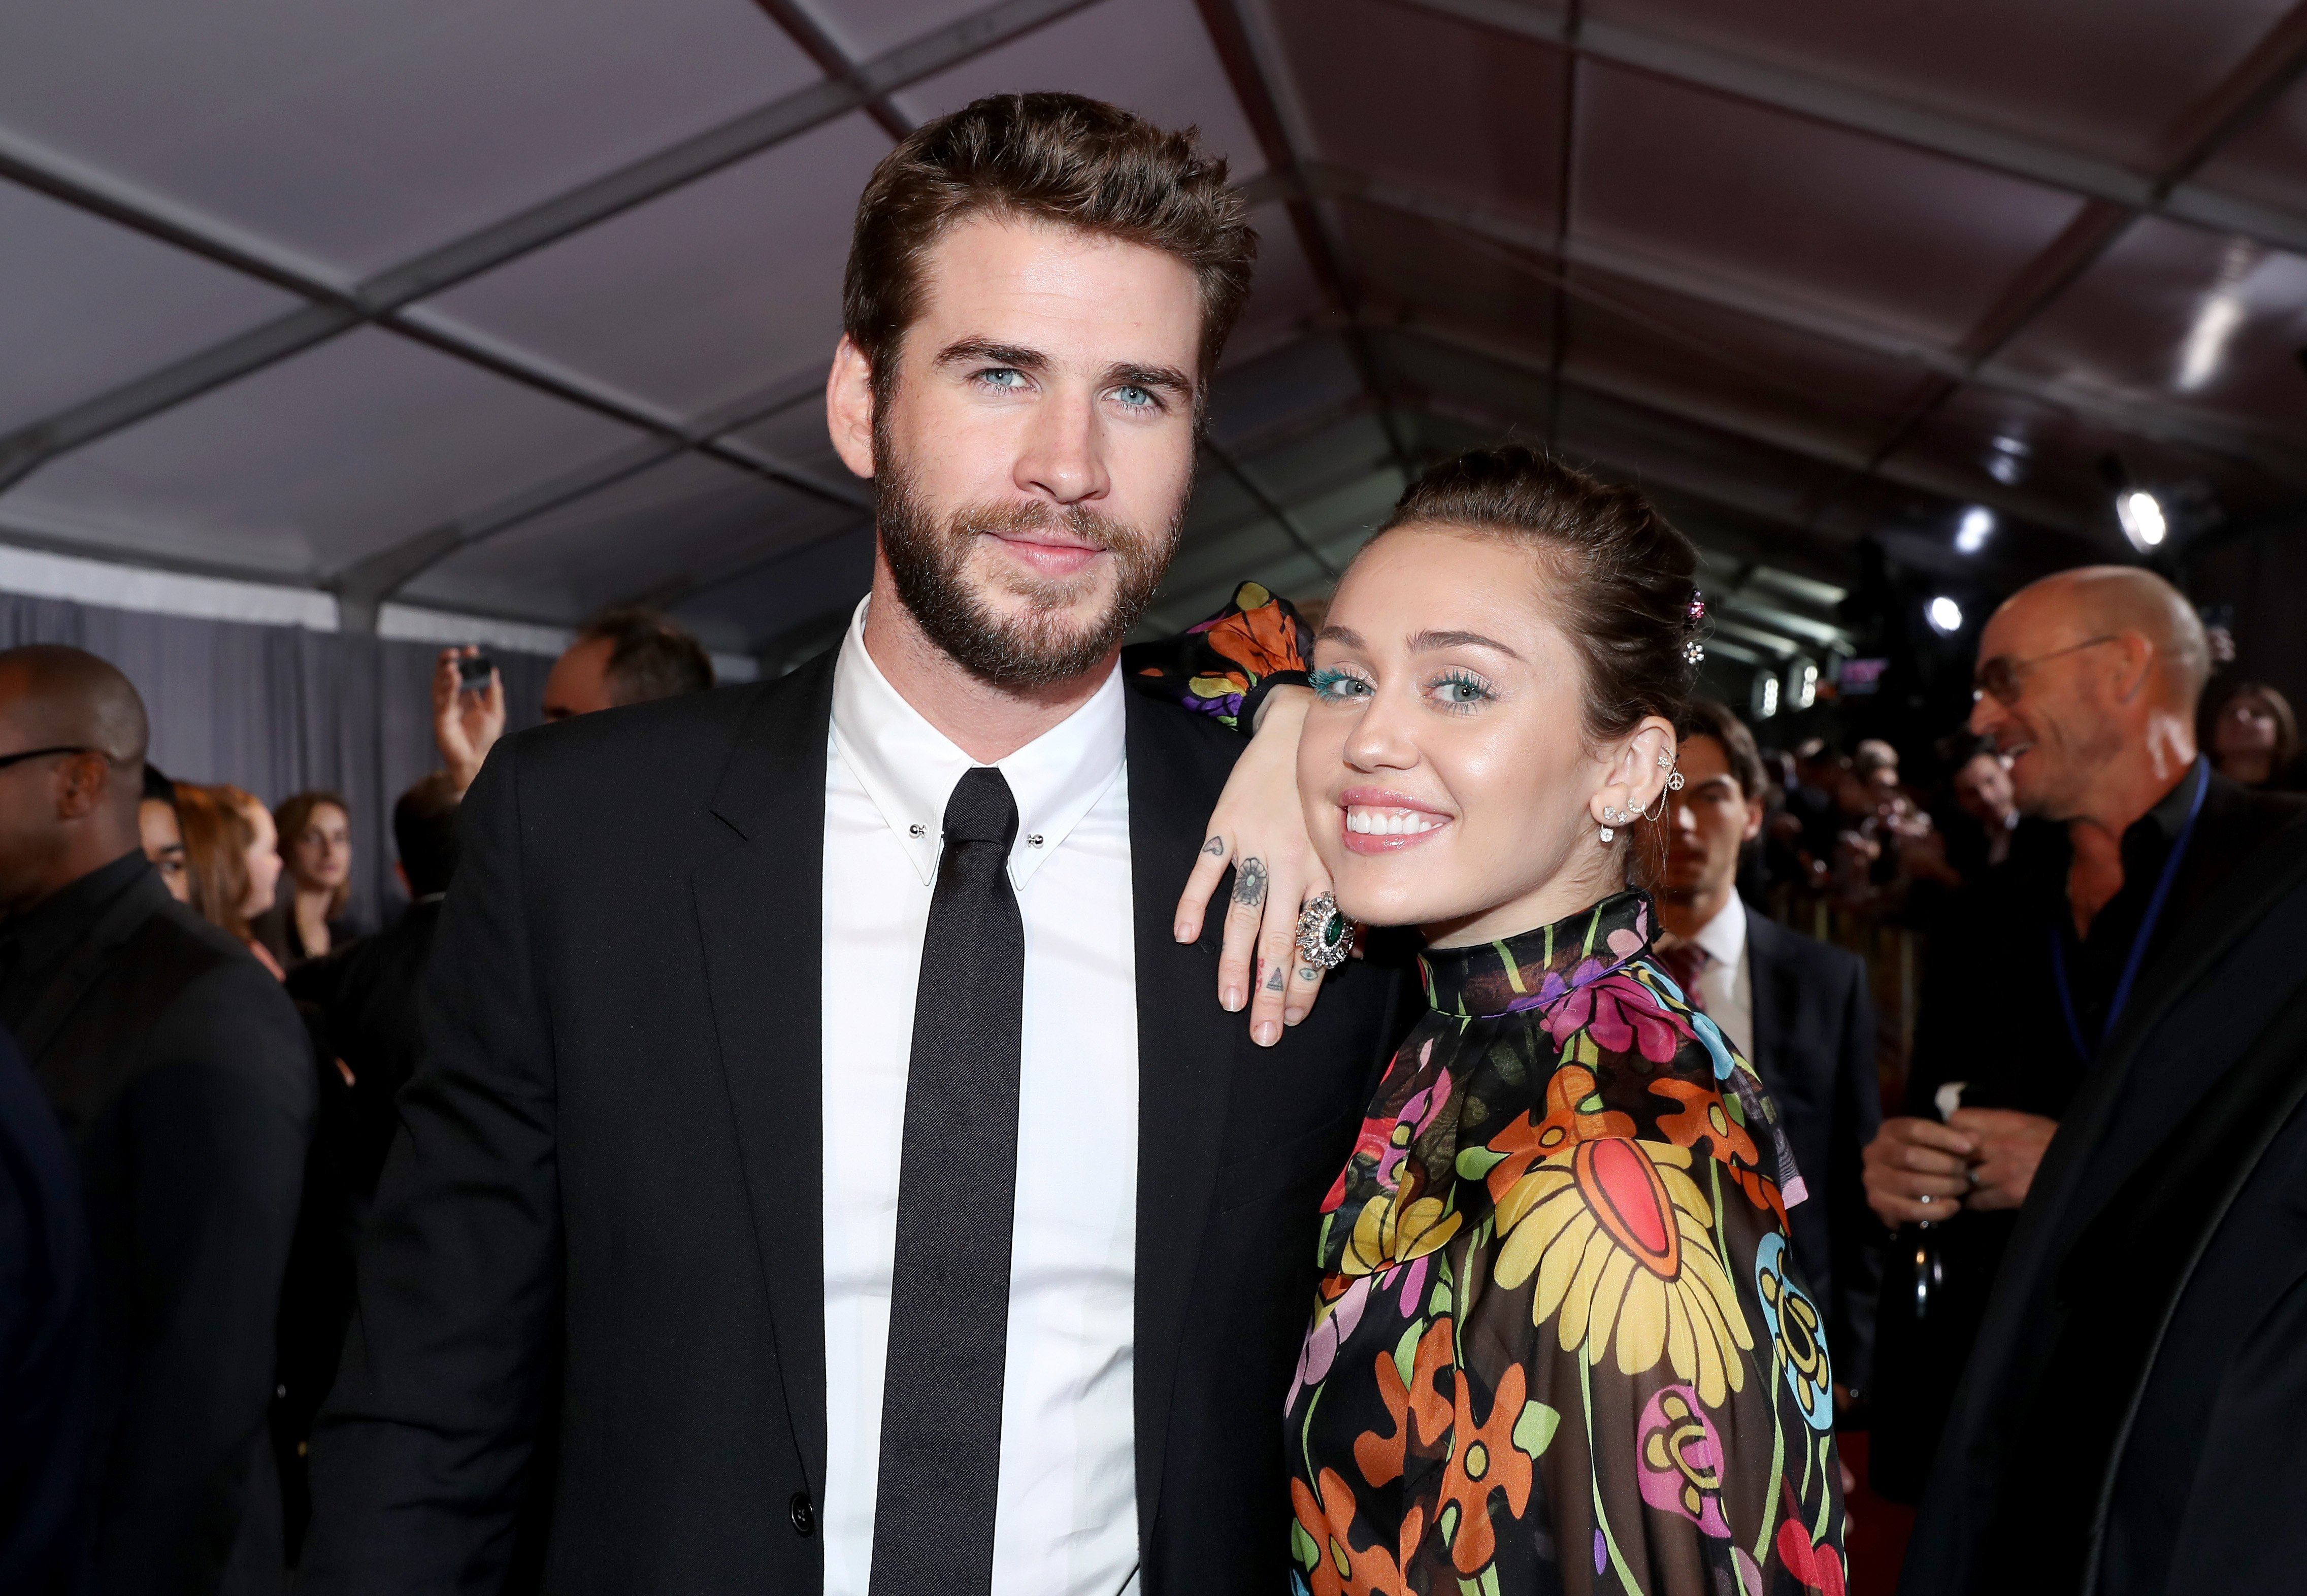 """Actor Liam Hemsworth (L) and Miley Cyrus at The World Premiere of Marvel Studios' """"Thor: Ragnarok"""" at the El Capitan Theatre on October 10, 2017, in Hollywood, California.   Source: Getty Images."""